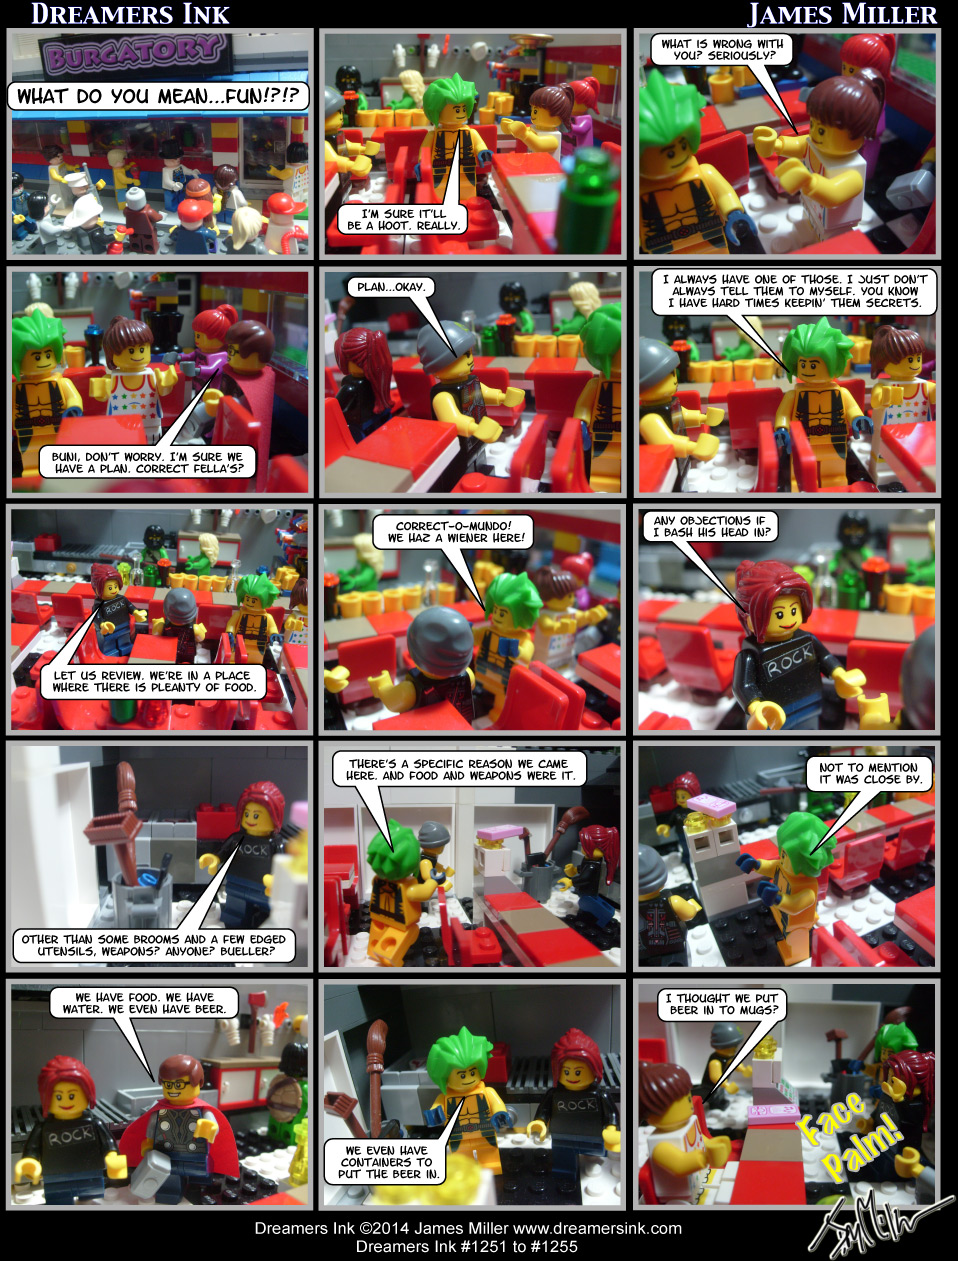 Strips #1251 To #1255